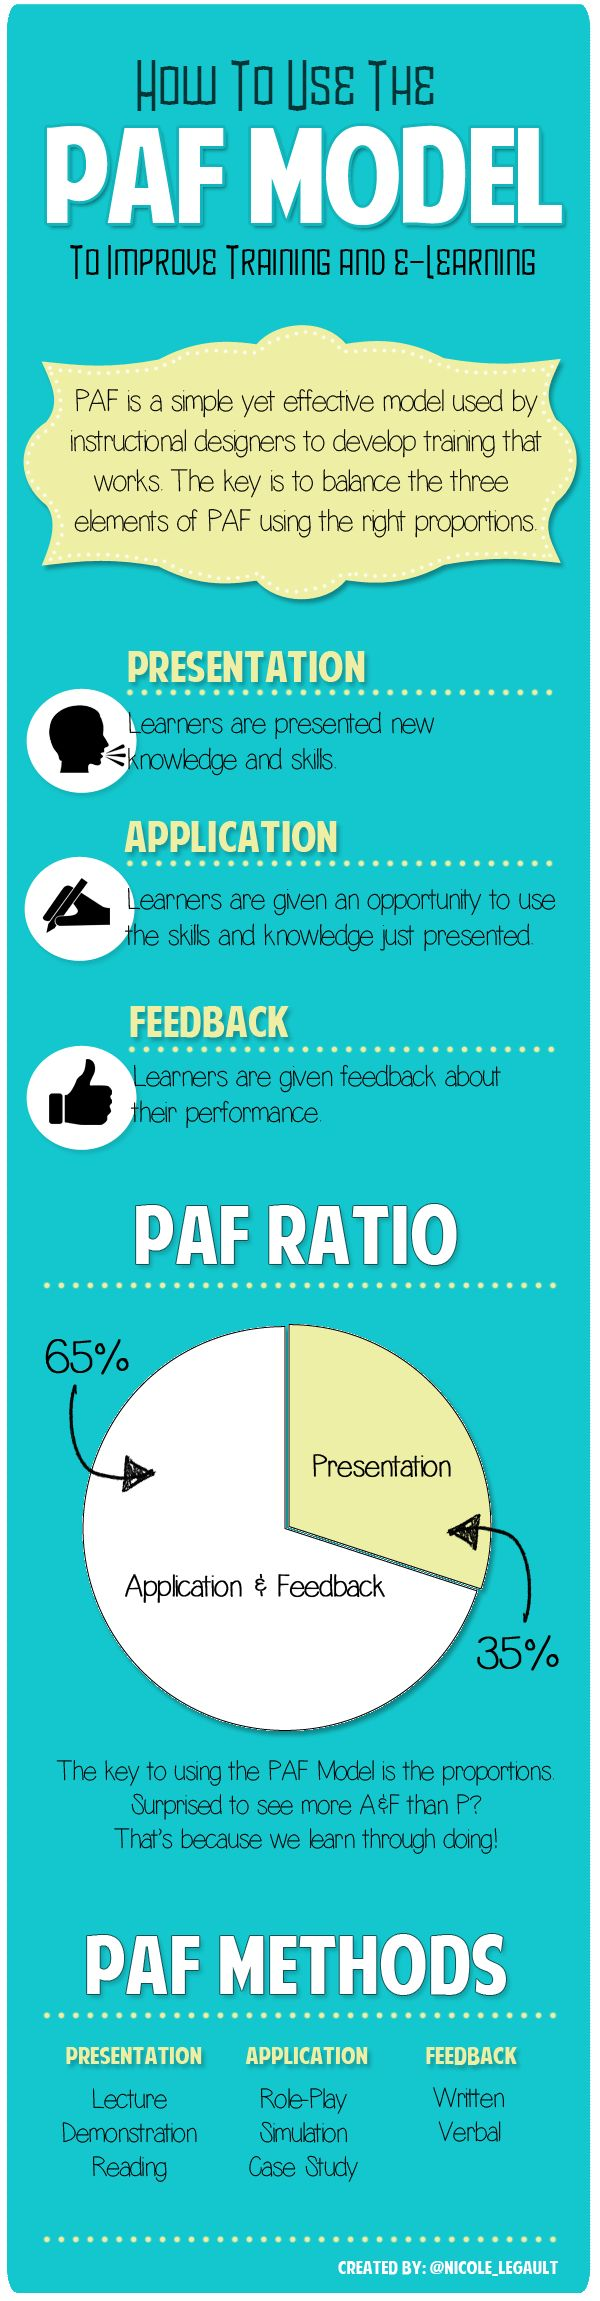 [INFOGRAPHIC] How to Use the PAF Model to Improve Training and e-Learning